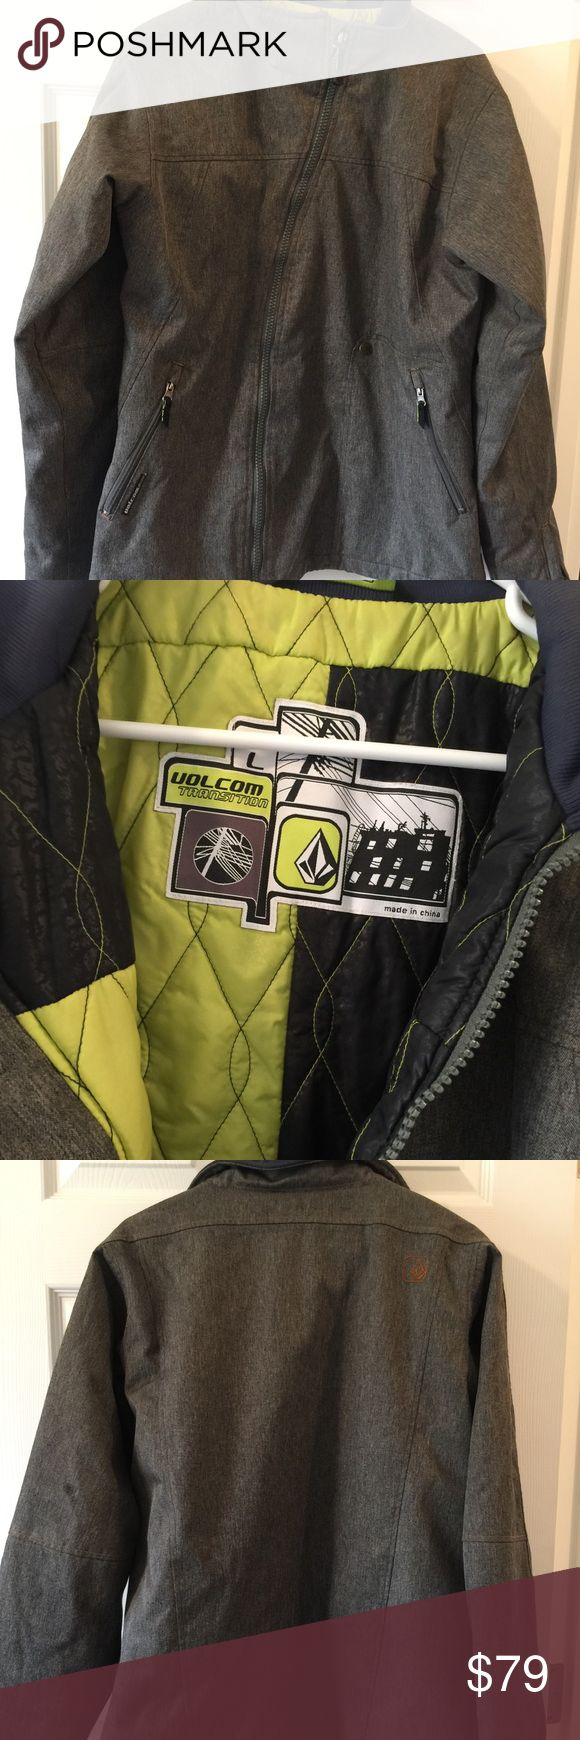 Men's dark gray Volcom ski jacket L Awesome jacket for Snow condition Cold weather Size L Volcom waterproof has glove tie in sleeves  Great condition Volcom Jackets & Coats Ski & Snowboard